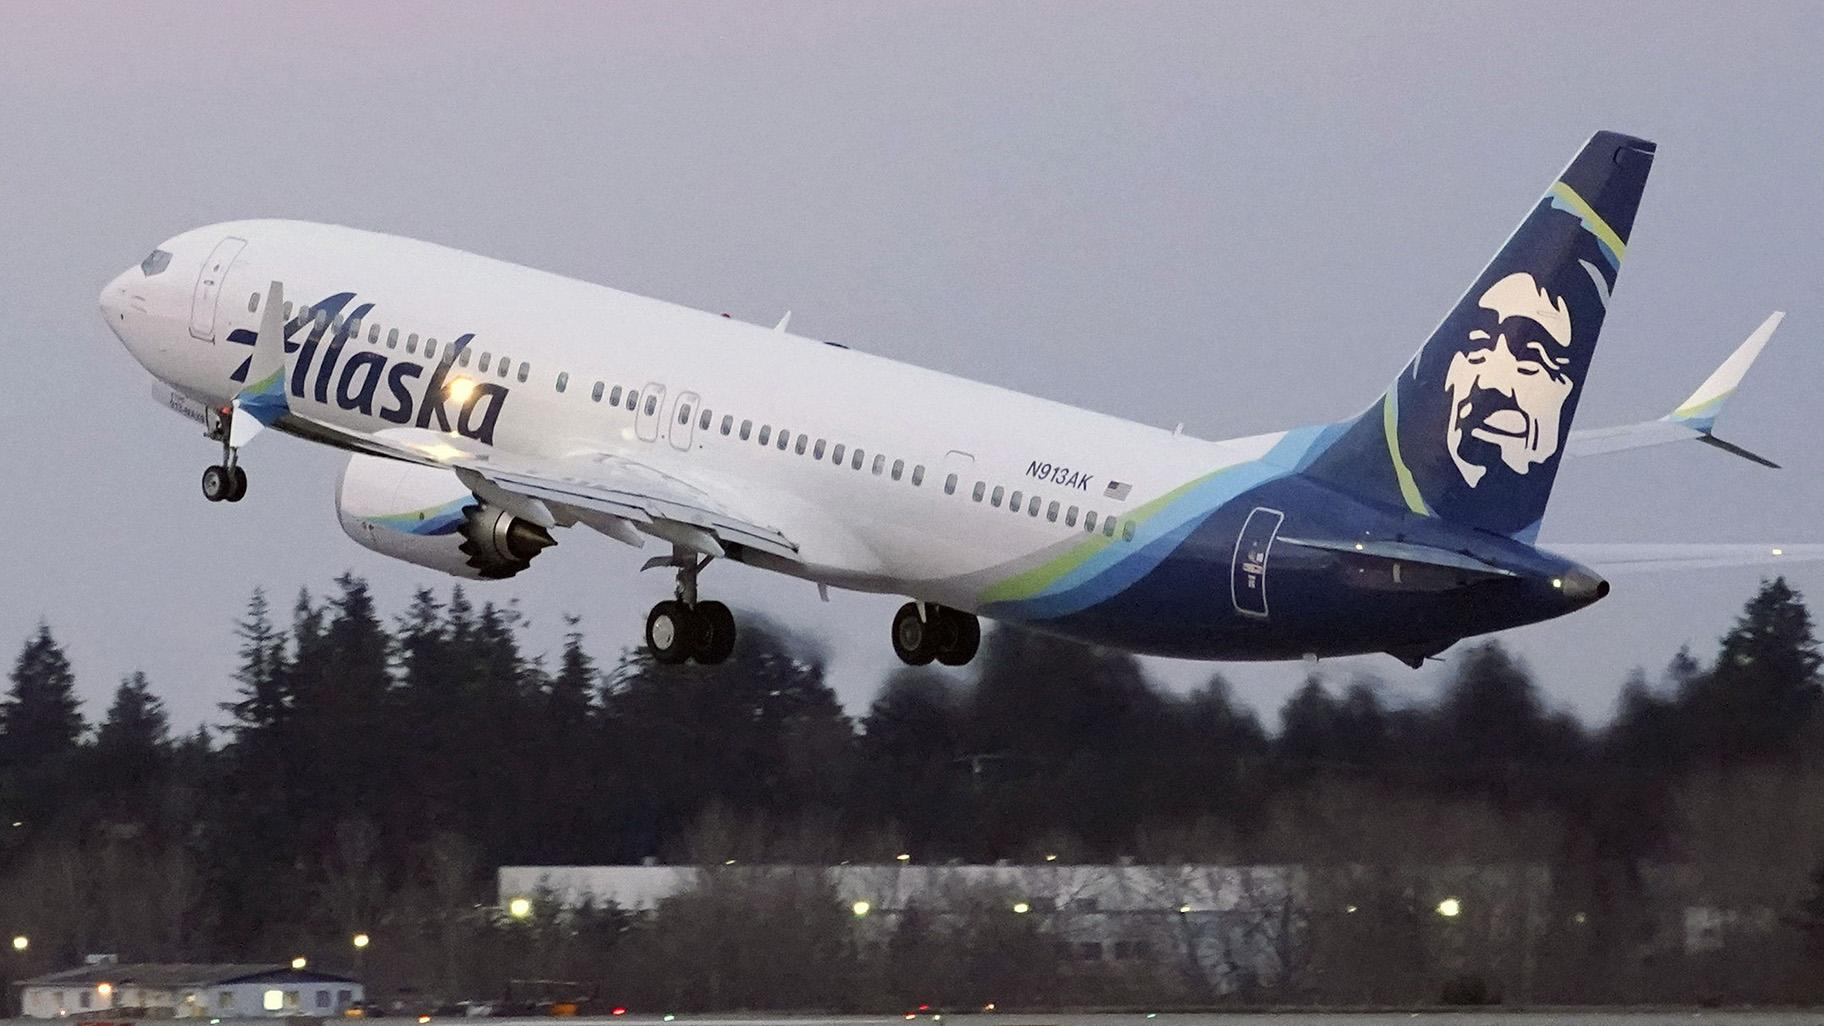 The Federal Aviation Administration said Thursday, April 22, 2021 that 106 planes worldwide are grounded, including 71 in the United States. Airlines are waiting for Boeing to come up with a plan for repairing the planes, and that plan would need FAA approval. (AP Photo / Ted S. Warren, File)